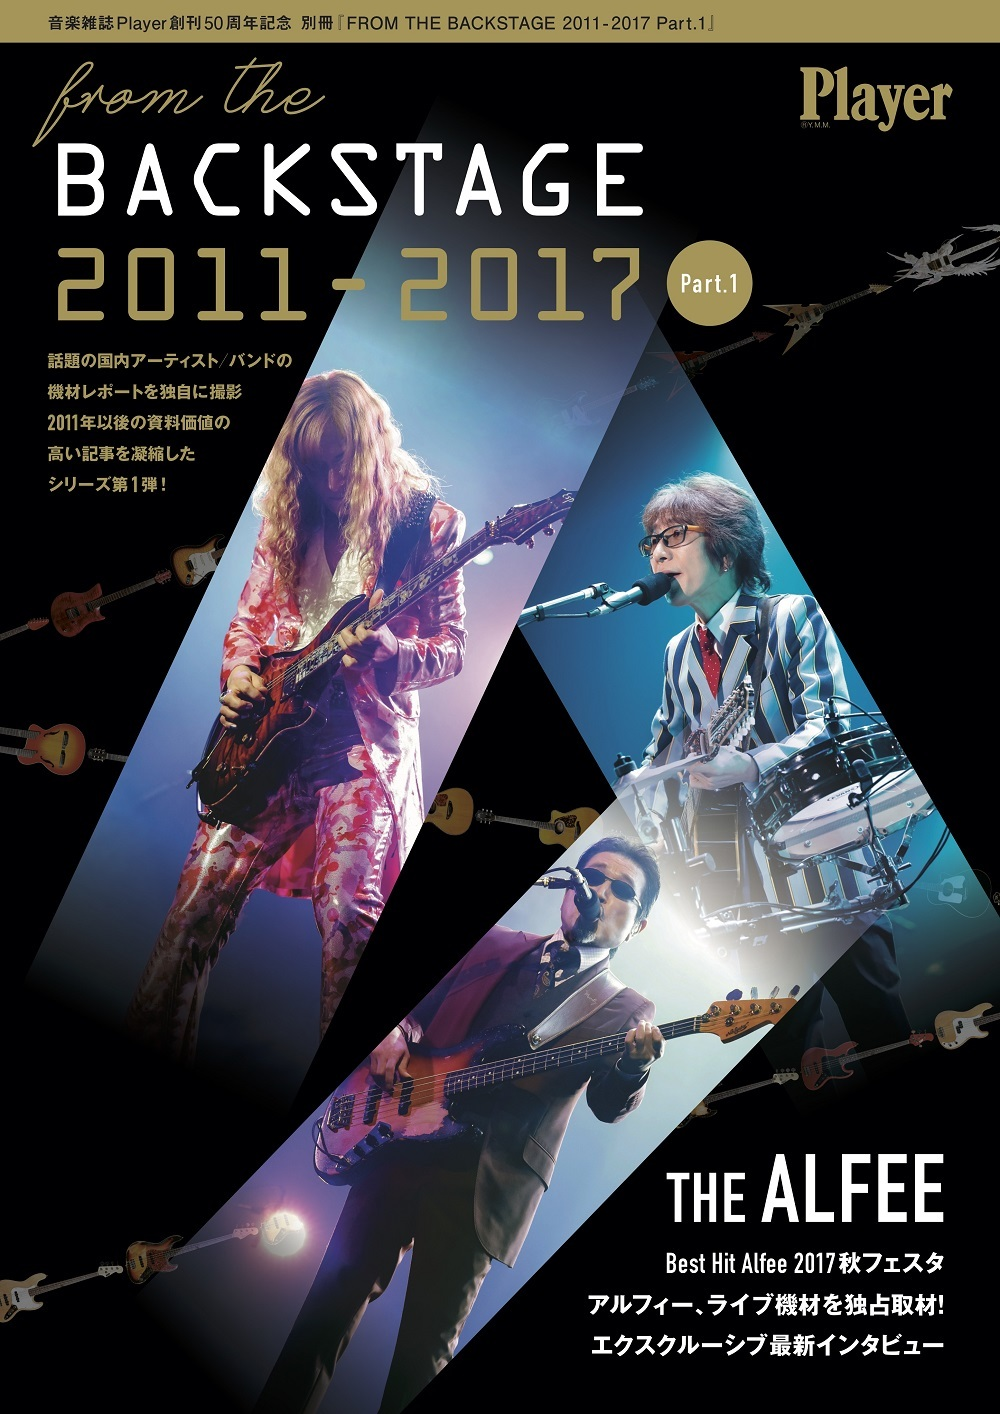 音楽雑誌Player 別冊『FROM THE BACKSTAGE 2011-2017 Part.1』